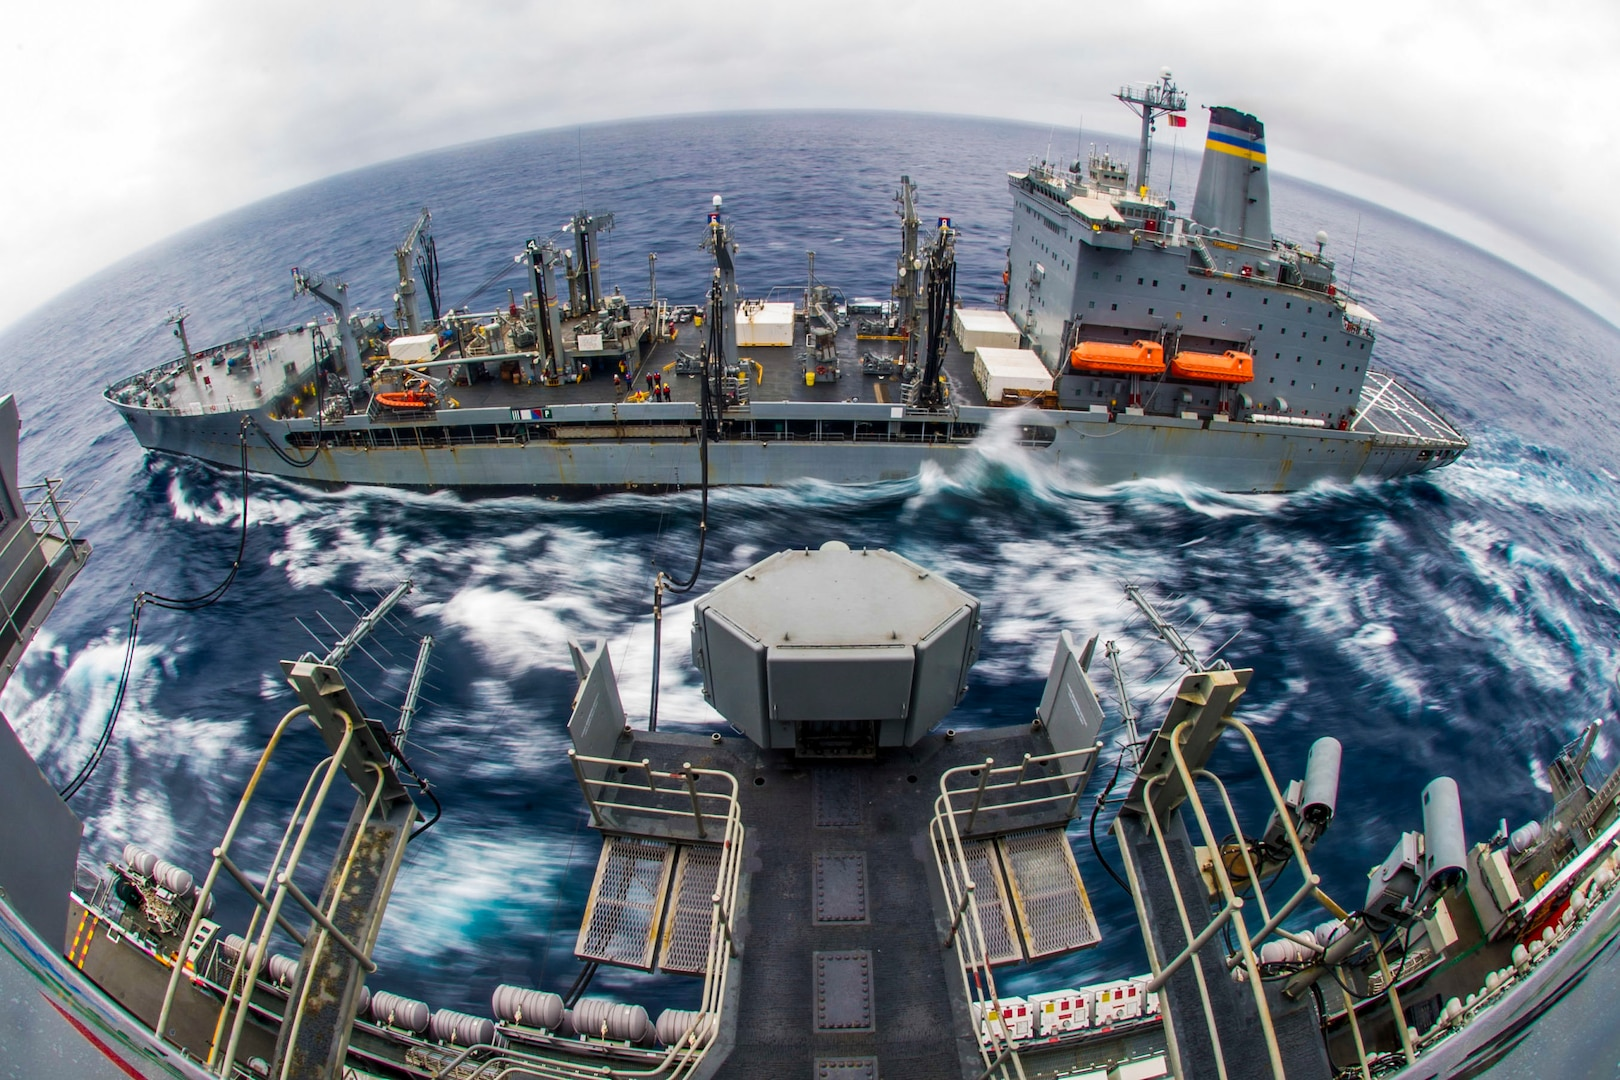 Two ships move together while one delivers fuel to the other.